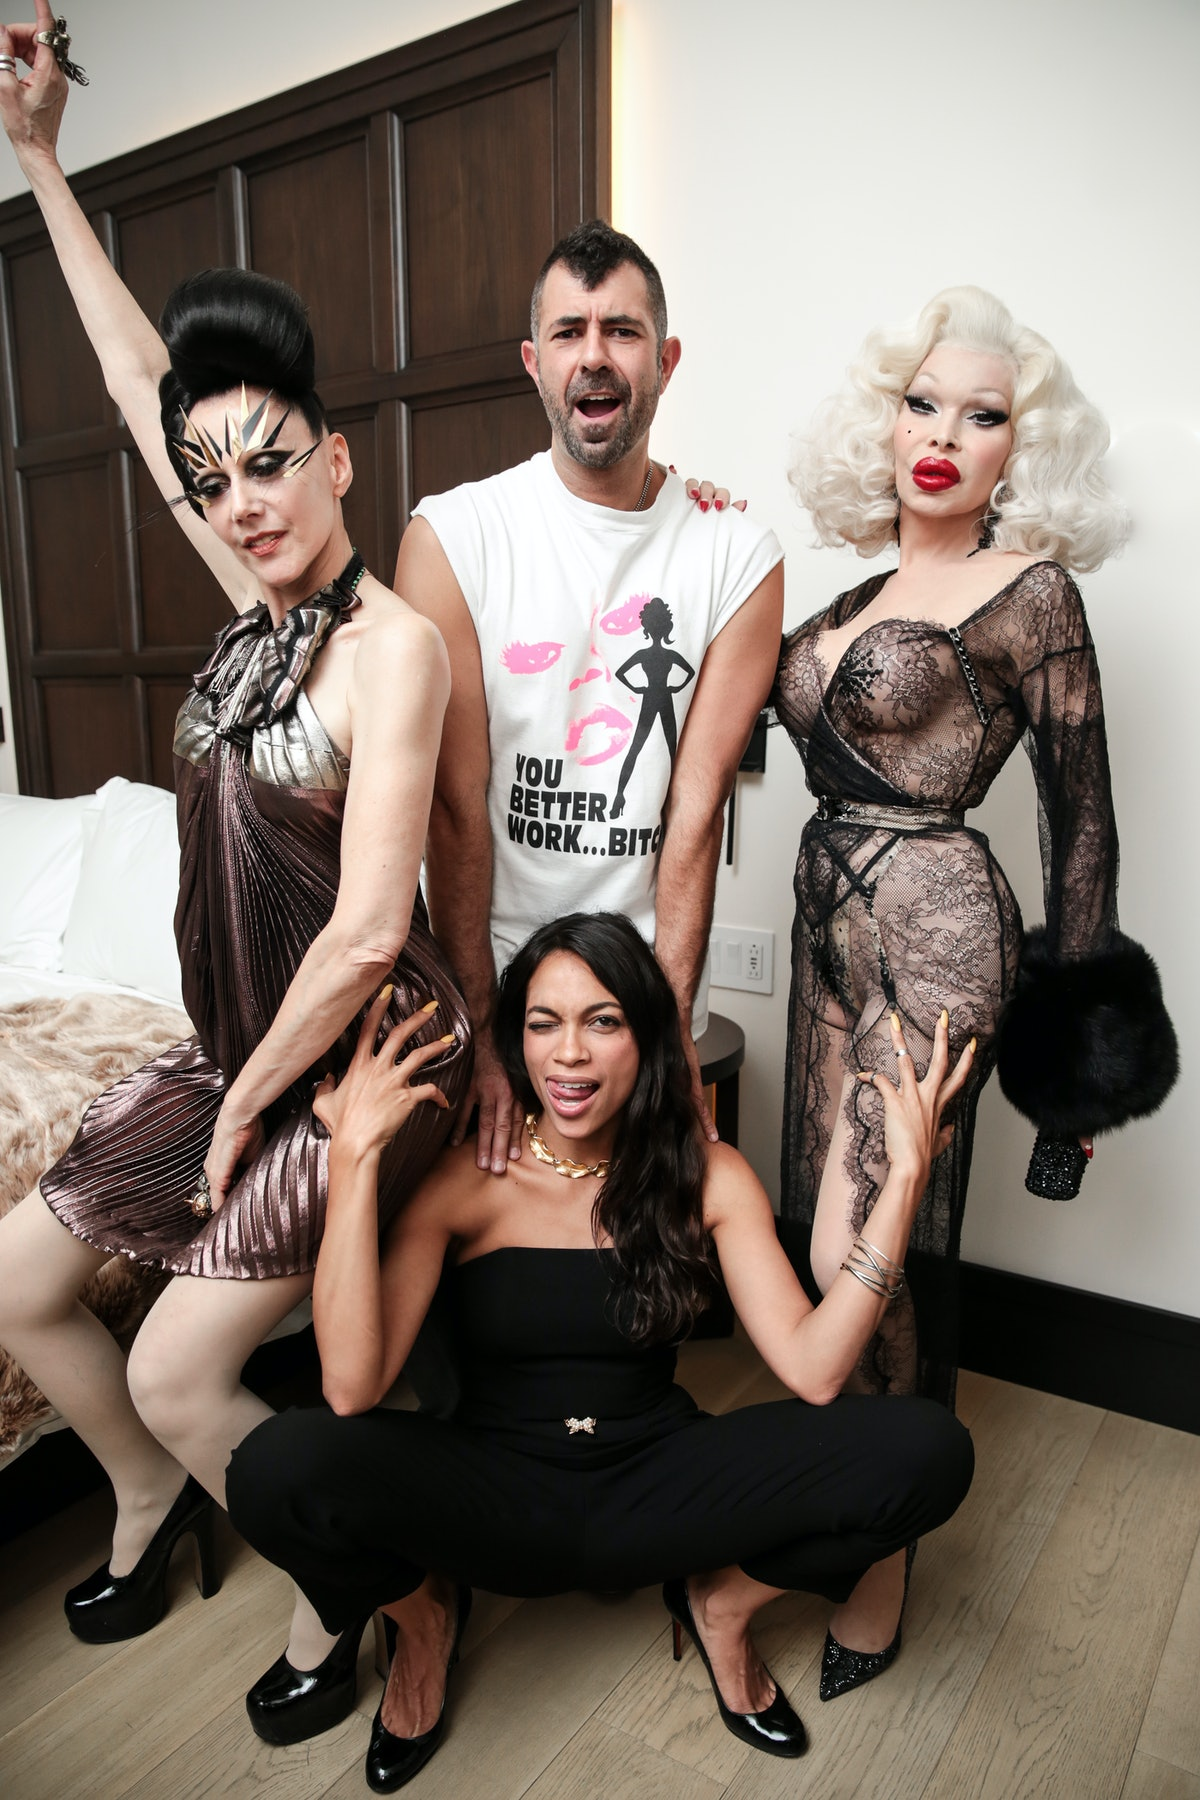 Jeremy Kost presents French Girls : at EDITION with Susanne Bartsch and Amanda LePore